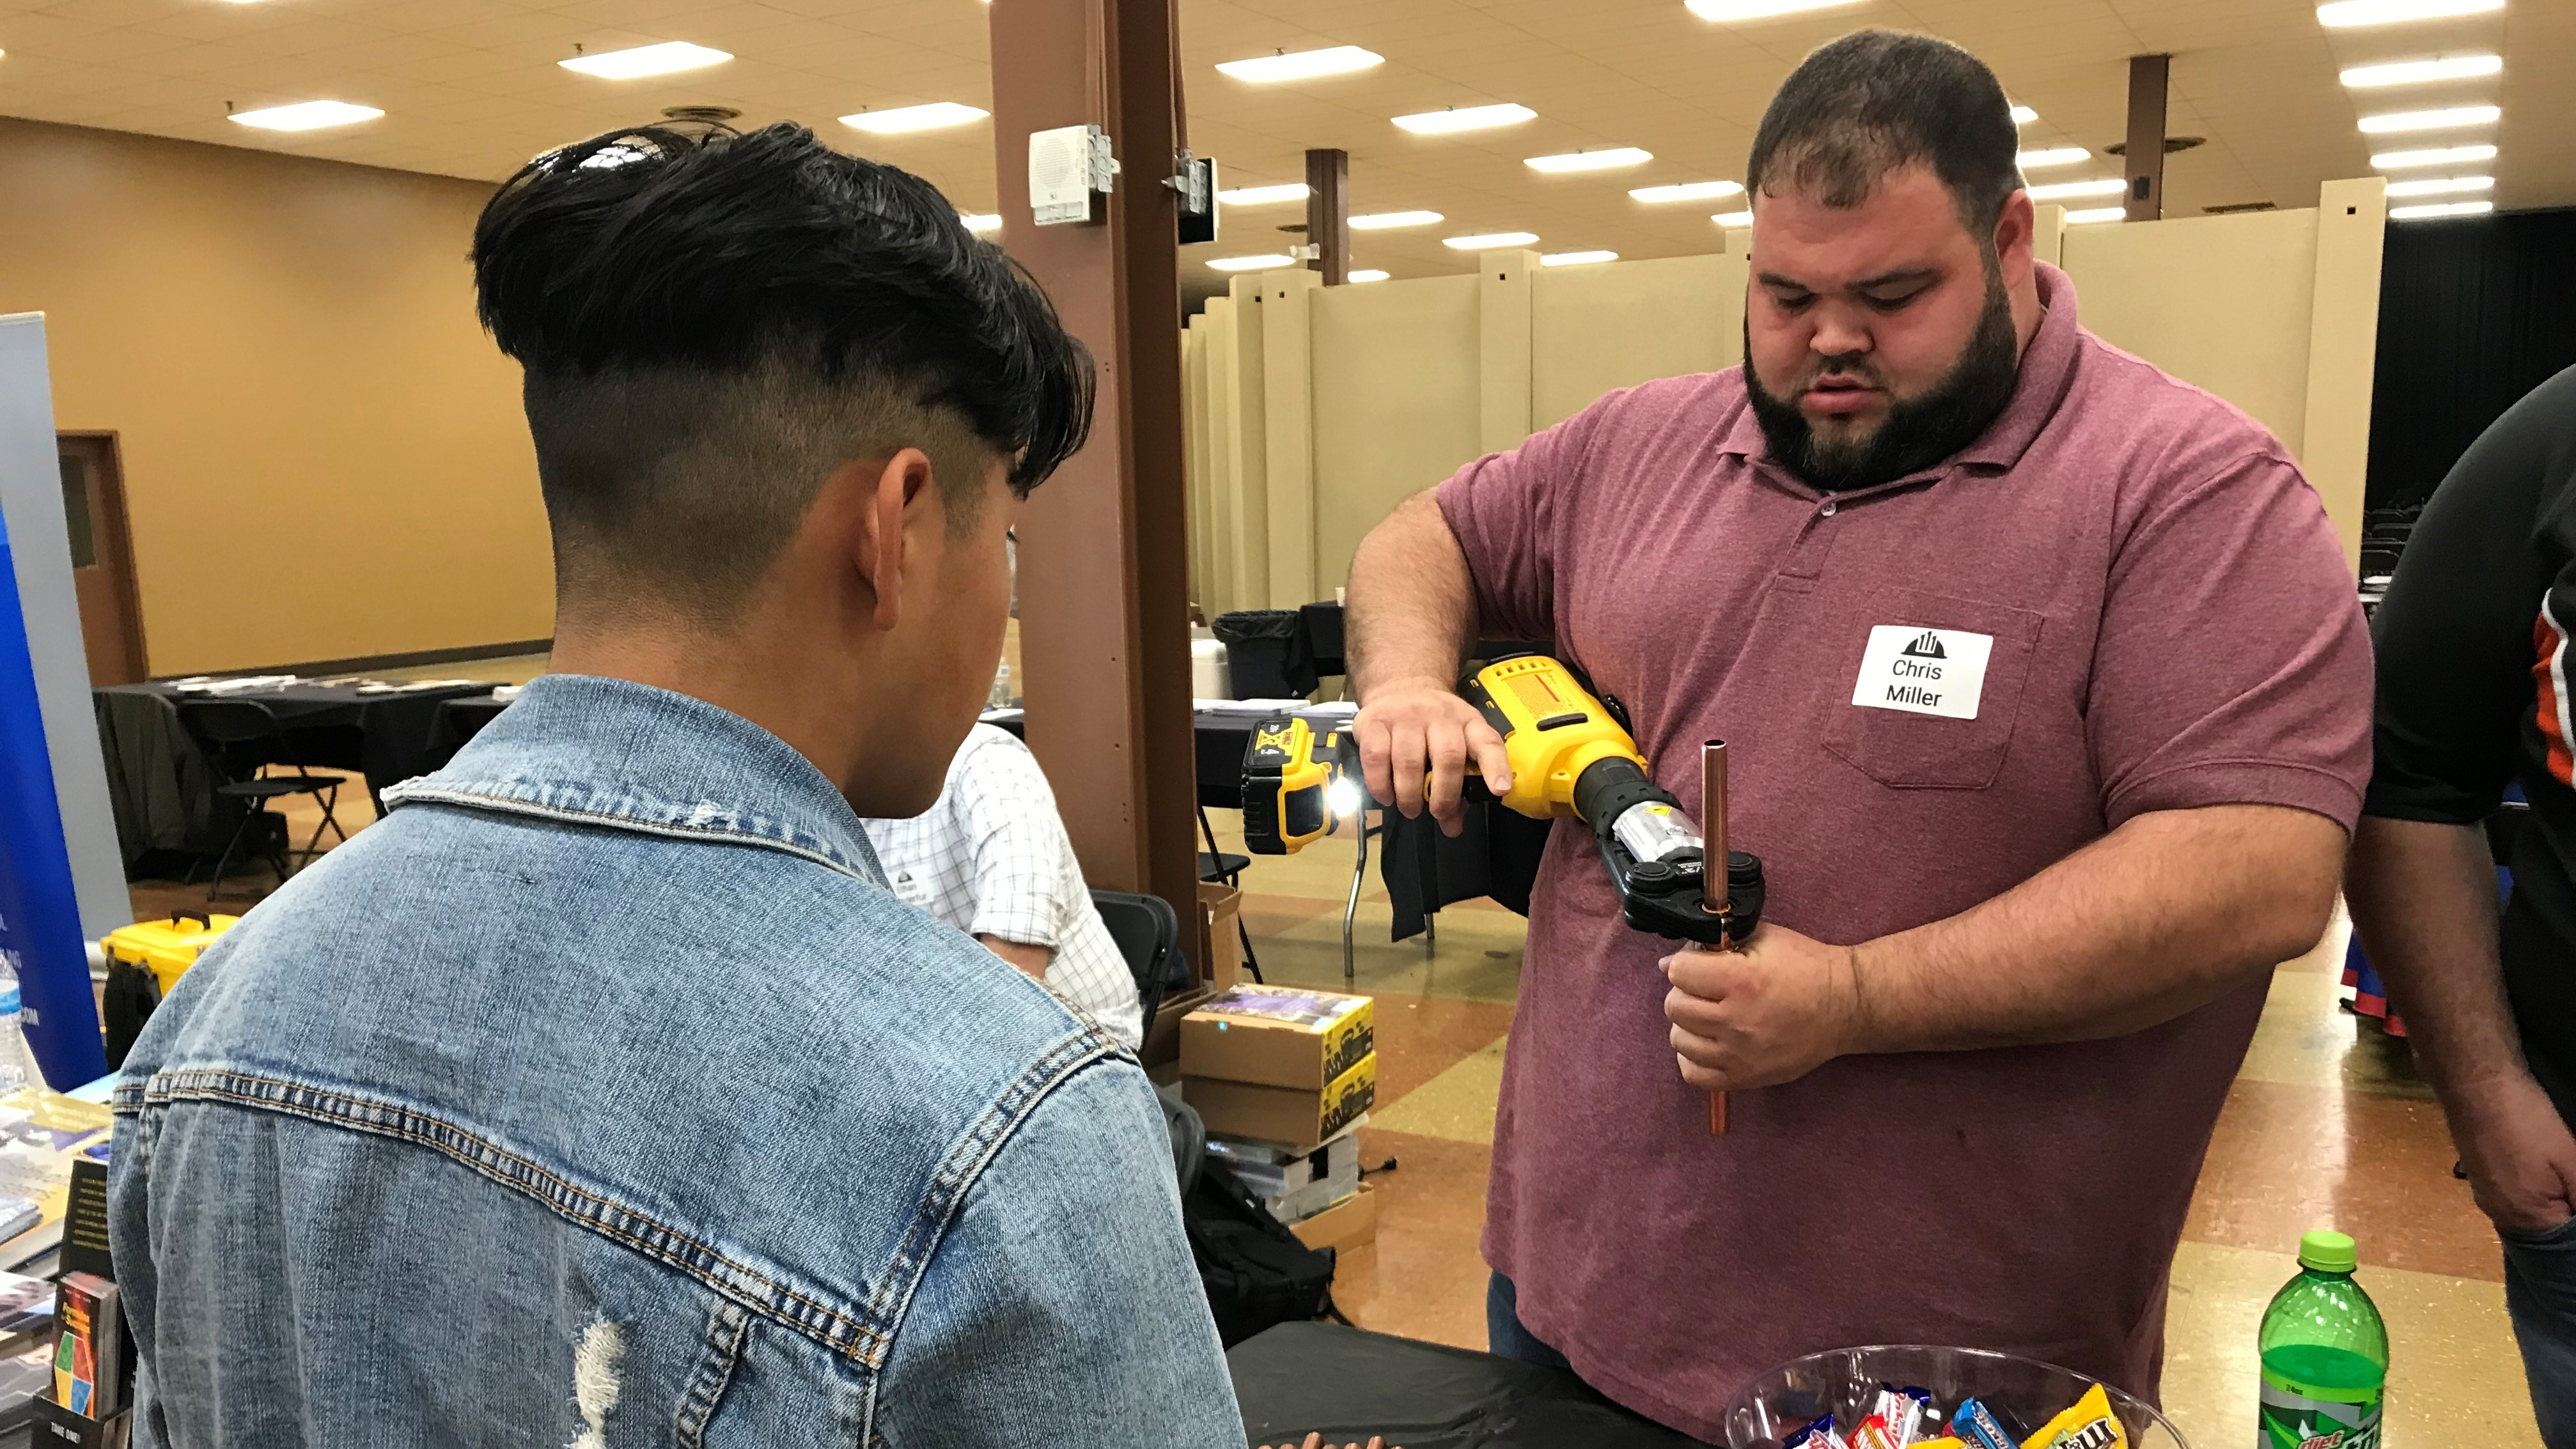 Chris Miller, of HVAC contractor United Services, Inc., demonstrates equipment used by the company during the CTEP career fair.